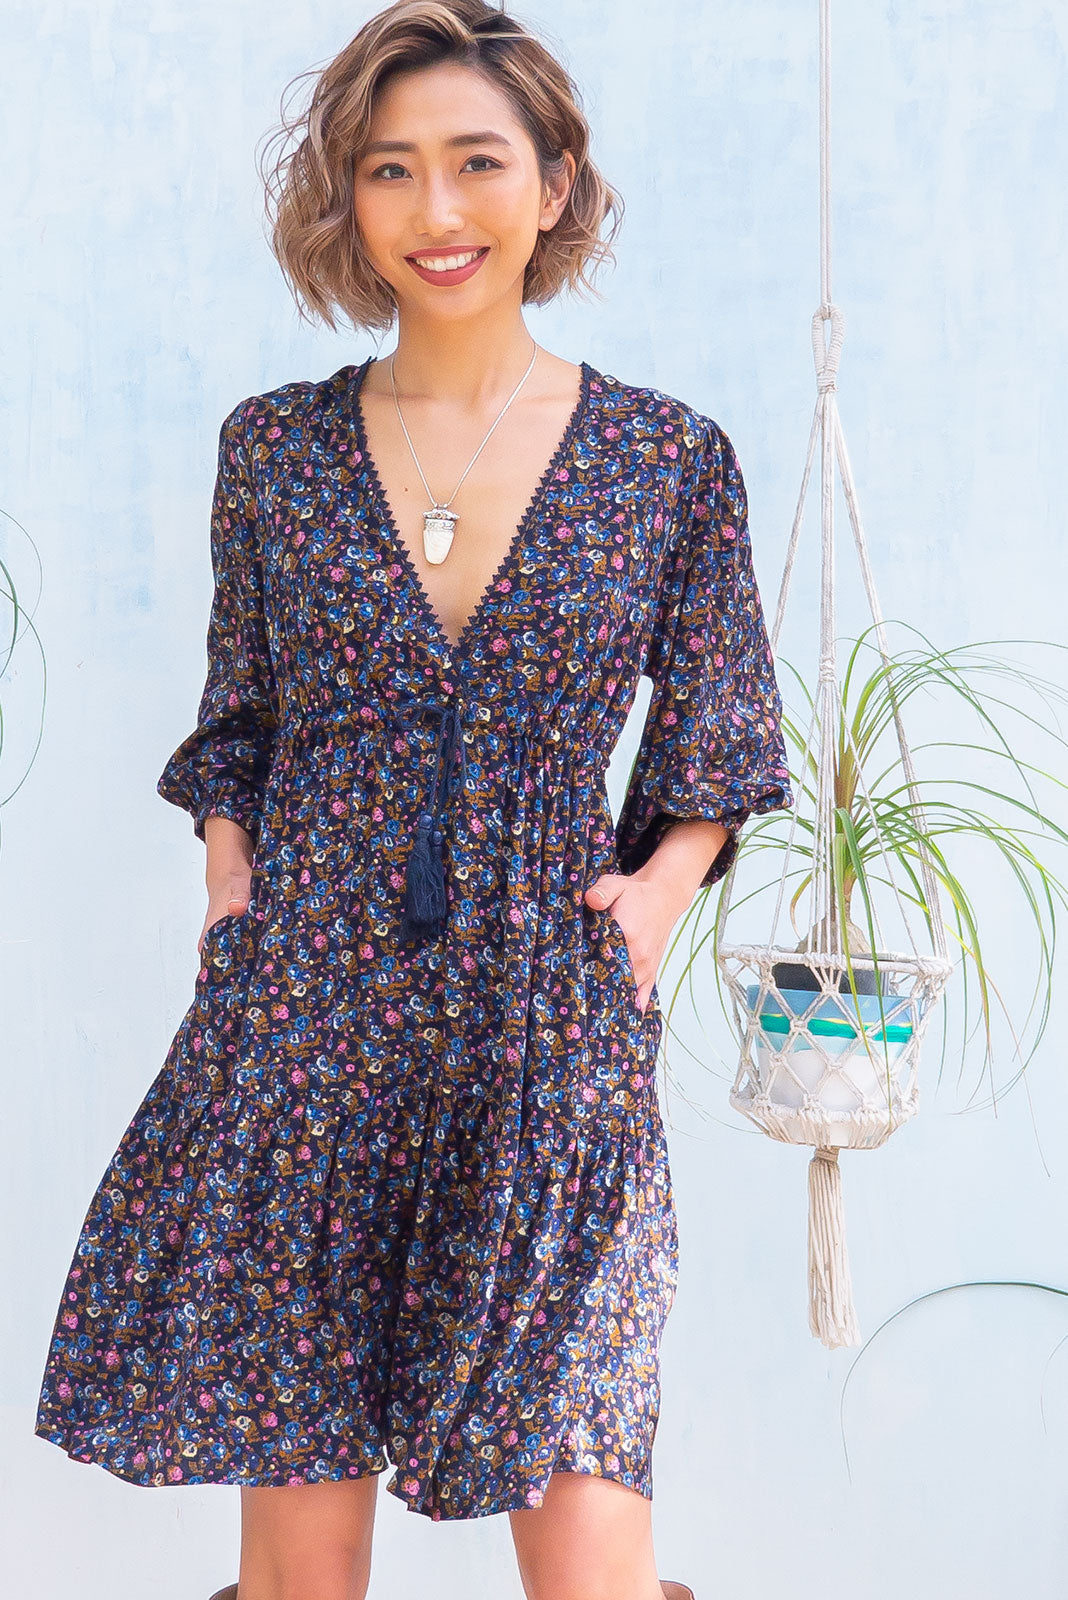 The Mariette Melody Navy Dress features deep V neckline with lace detail, puff long sleeves, side pockets, adjustable drawstring waist and woven 100% rayon in navy base with sweet blue floral print.